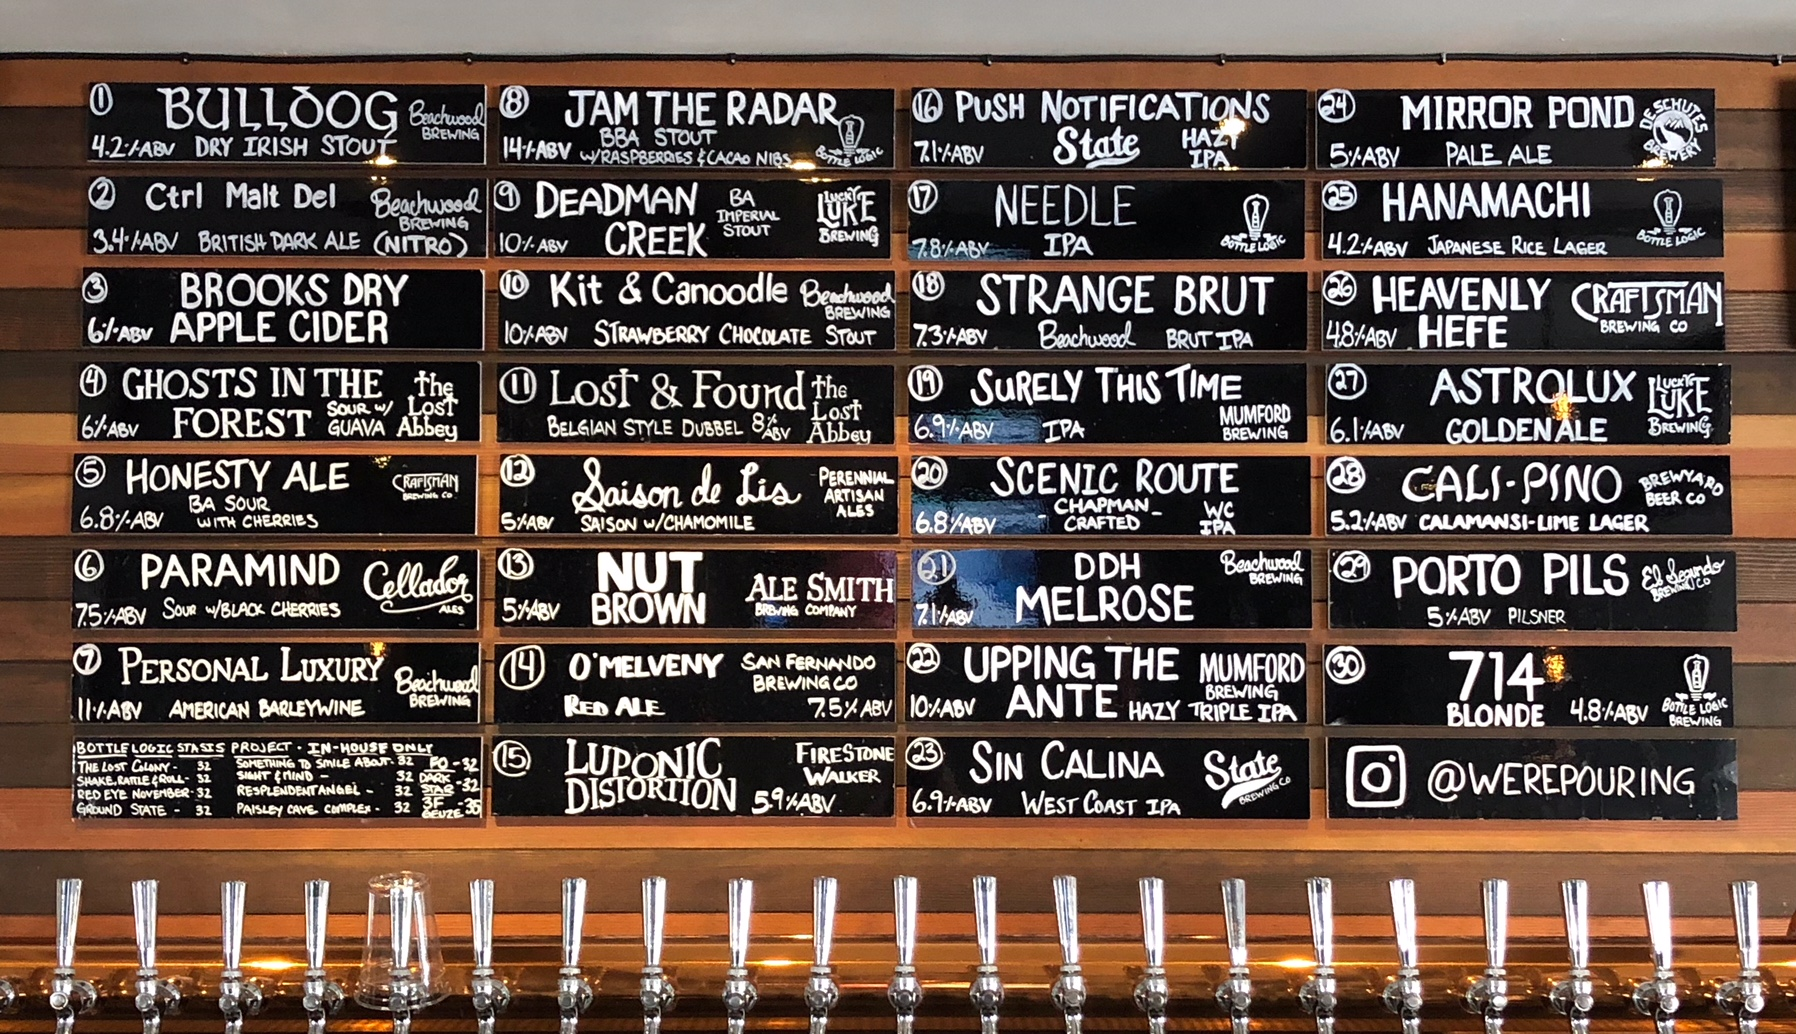 Were-Pouring-Craft-Beer-Taplist-3-30-19